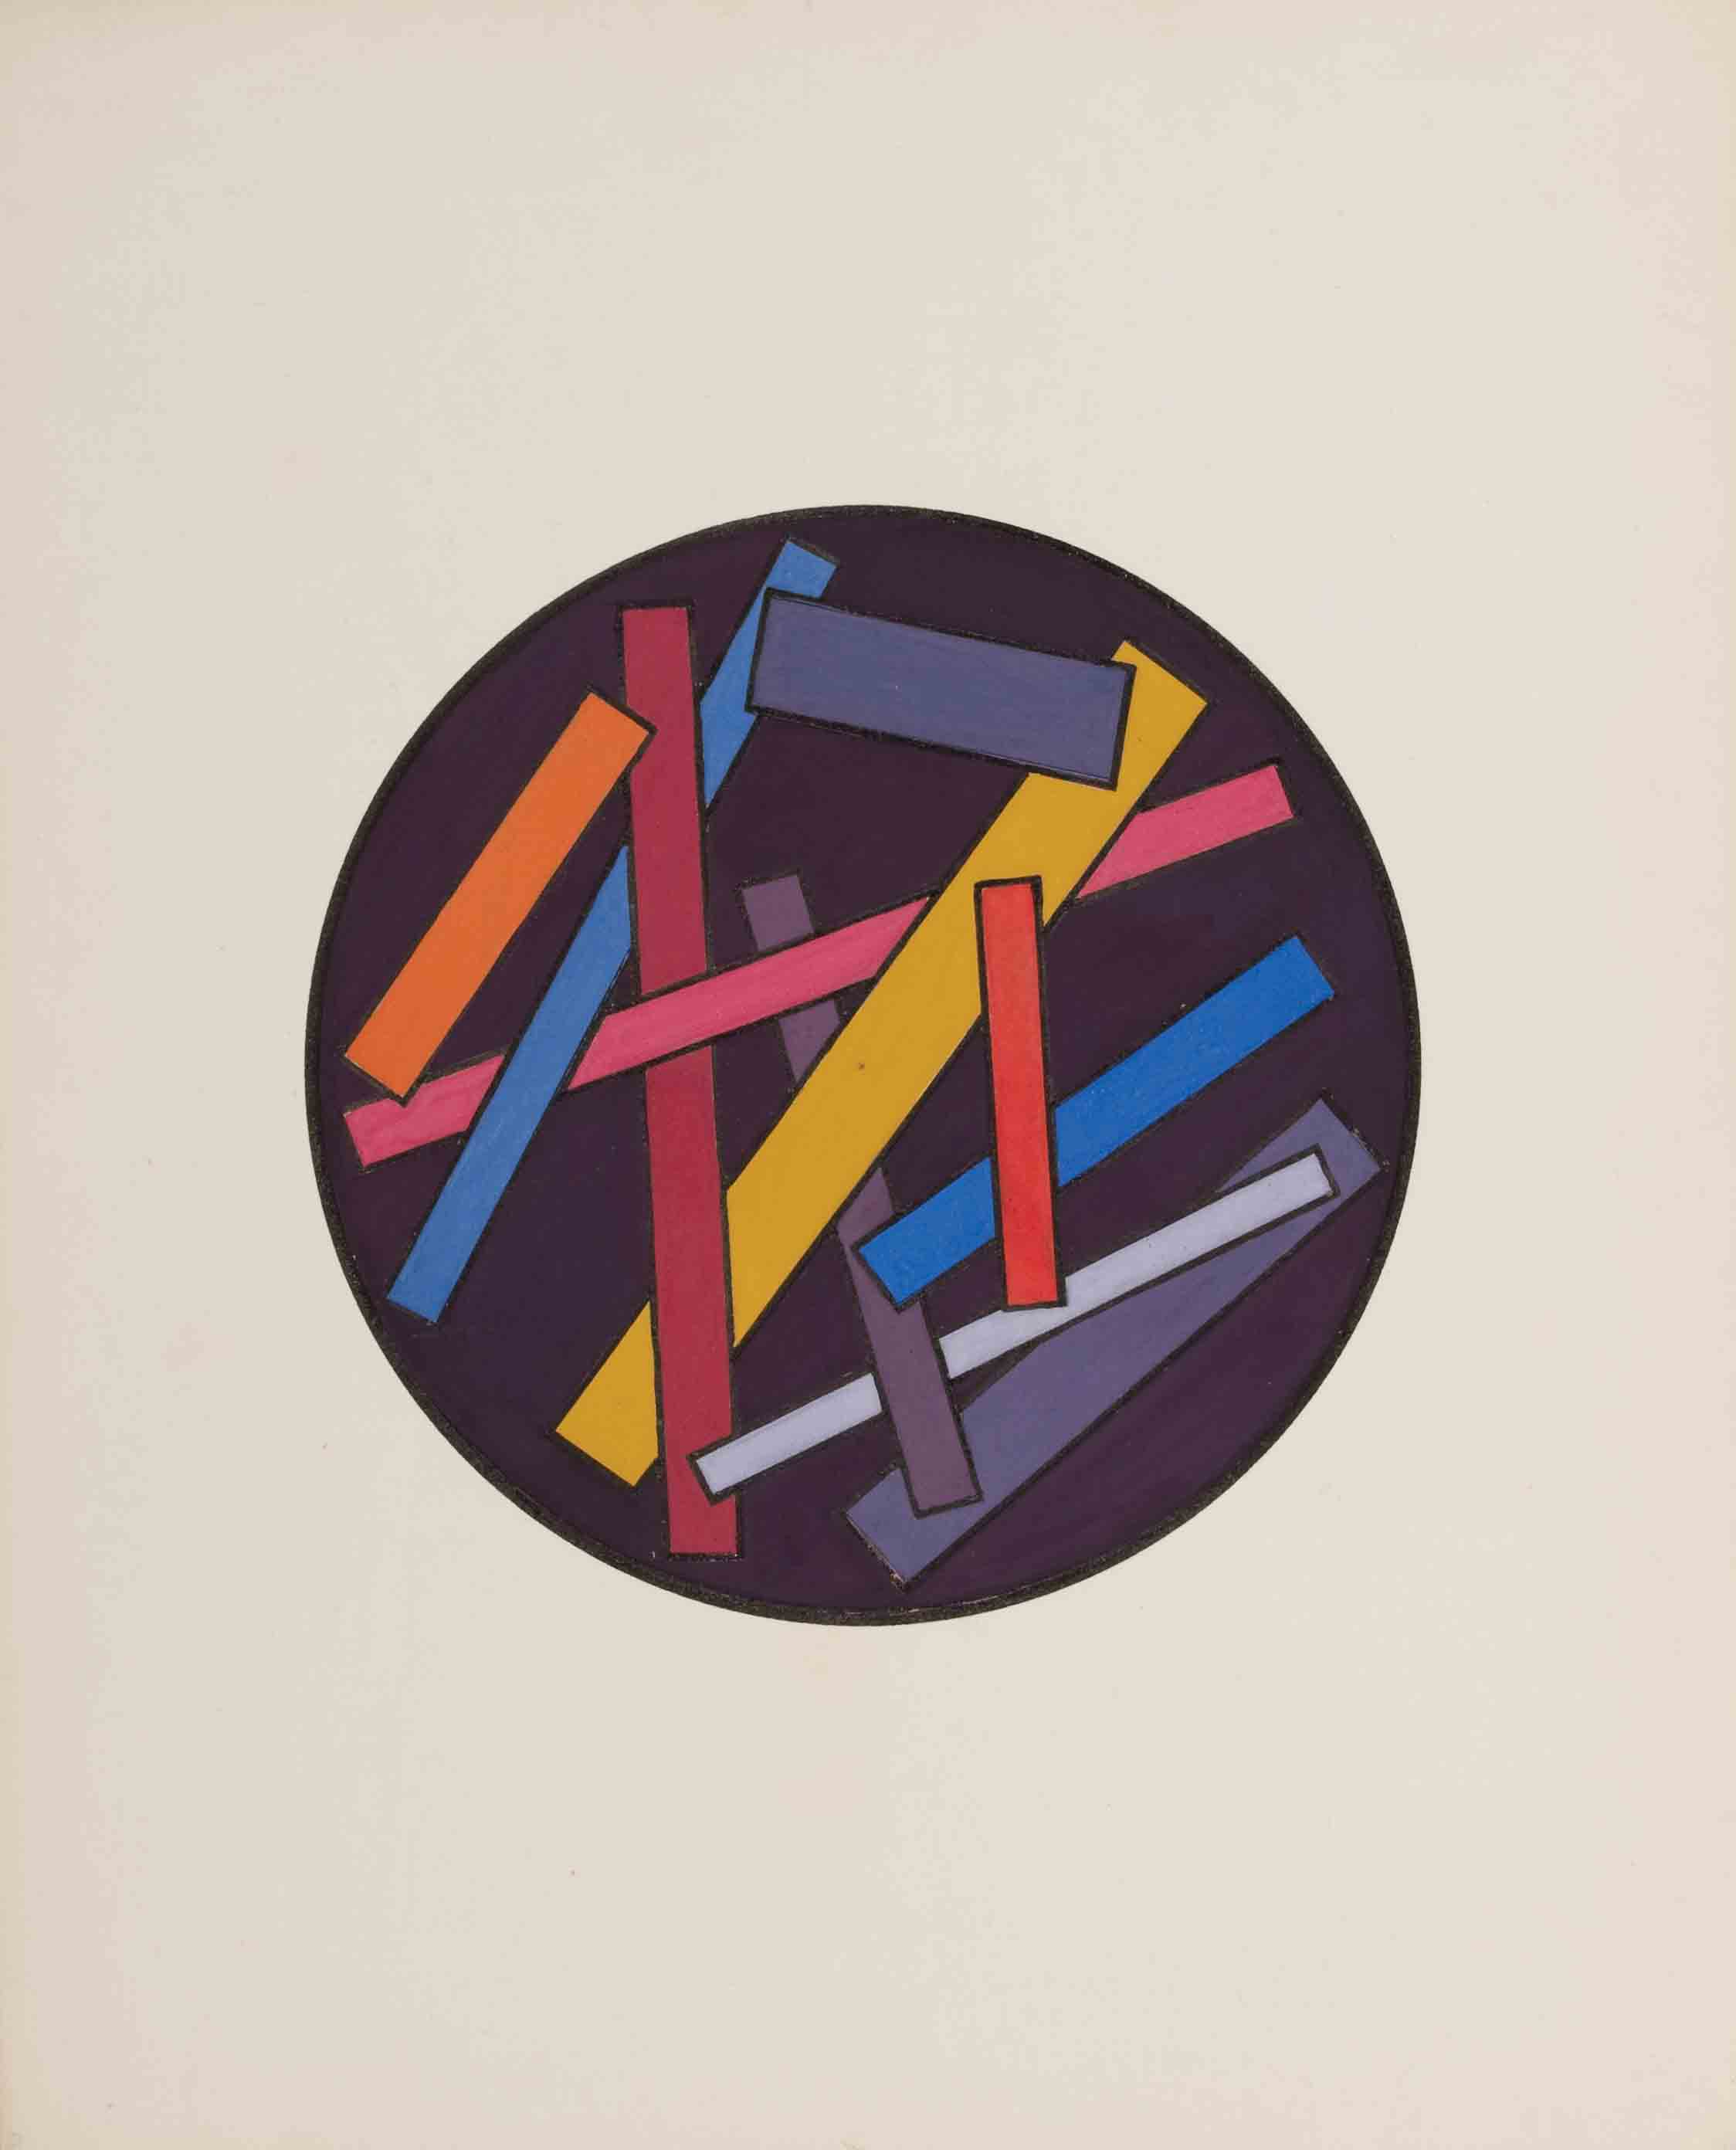 Untitled from the series The Course of Dimensional Art, mid 1920s - Yakov Chernikhov